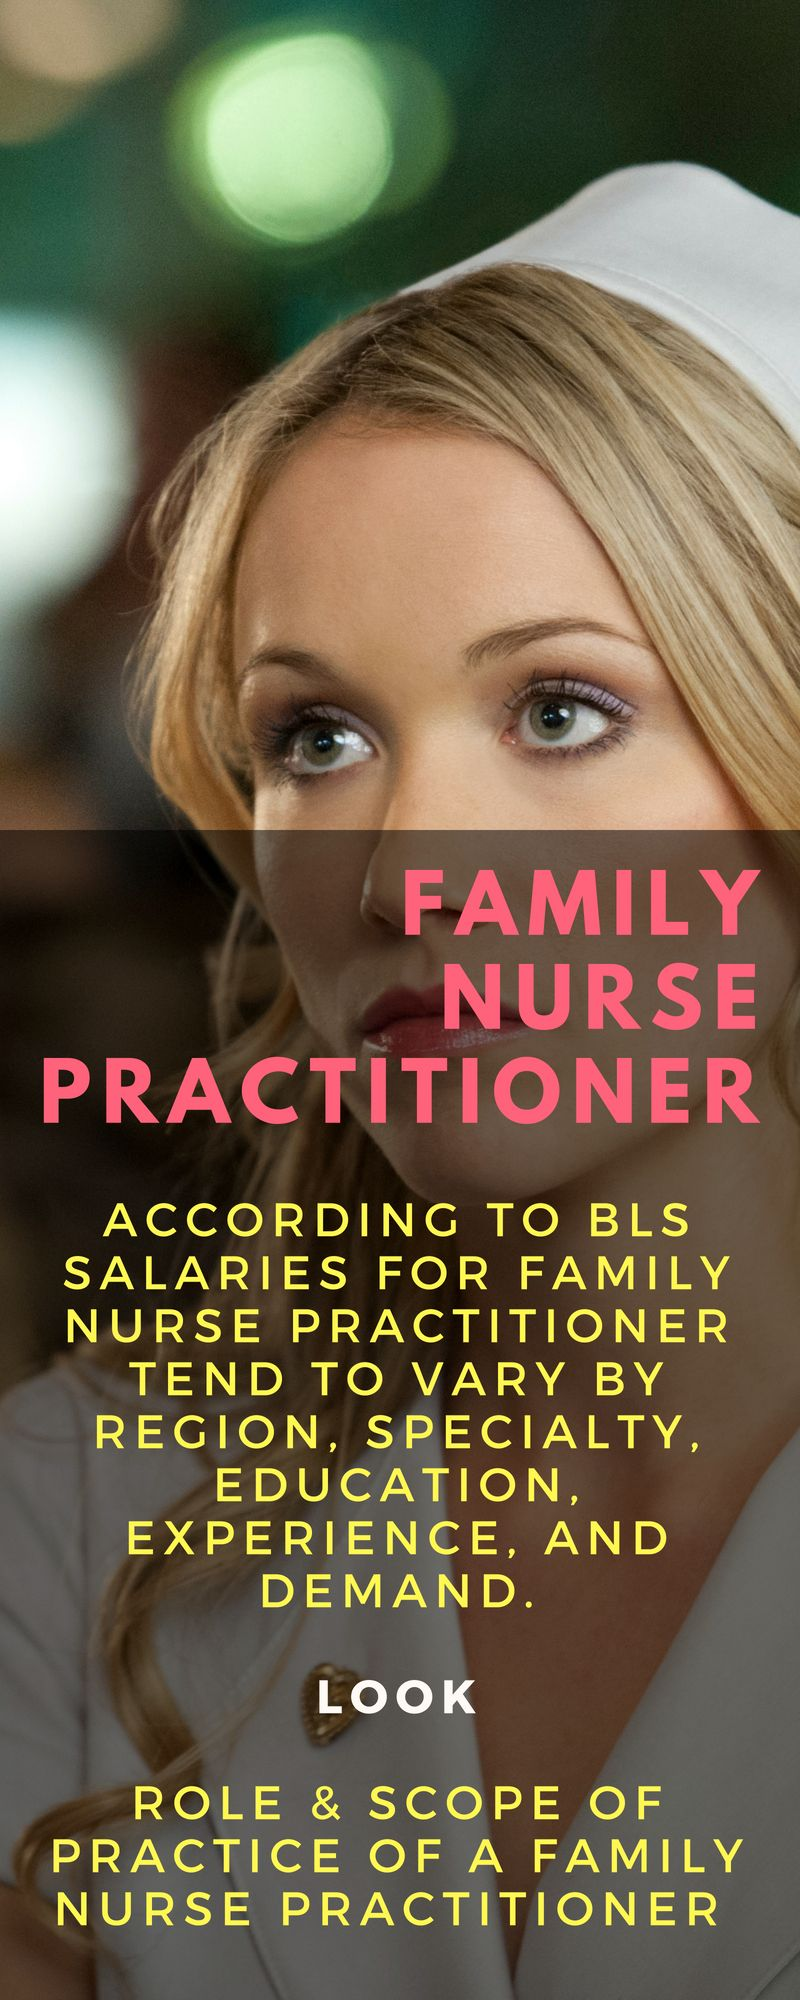 Family nurse practitioners play an important role in our